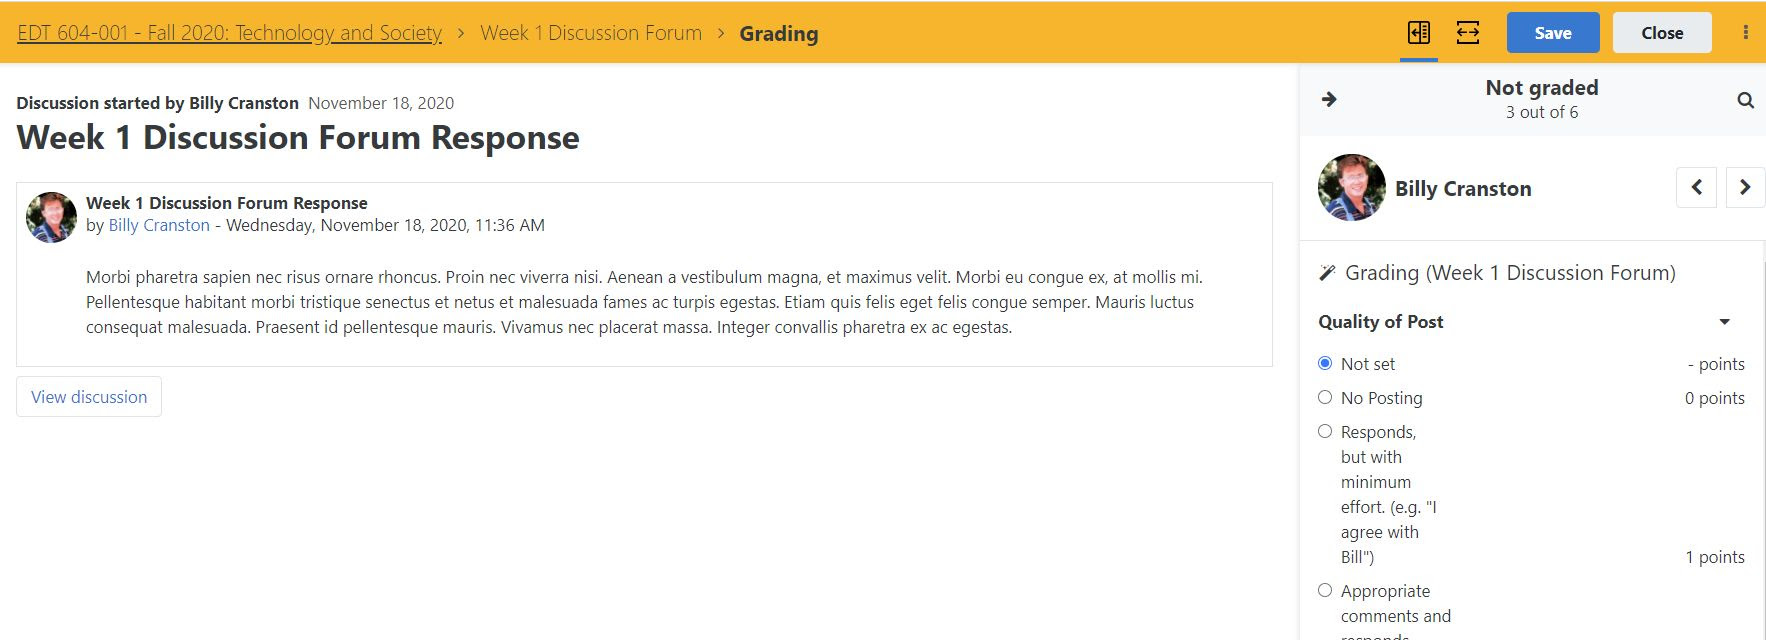 Improved Discussion Forum grading workflow and reporting - Screenshot